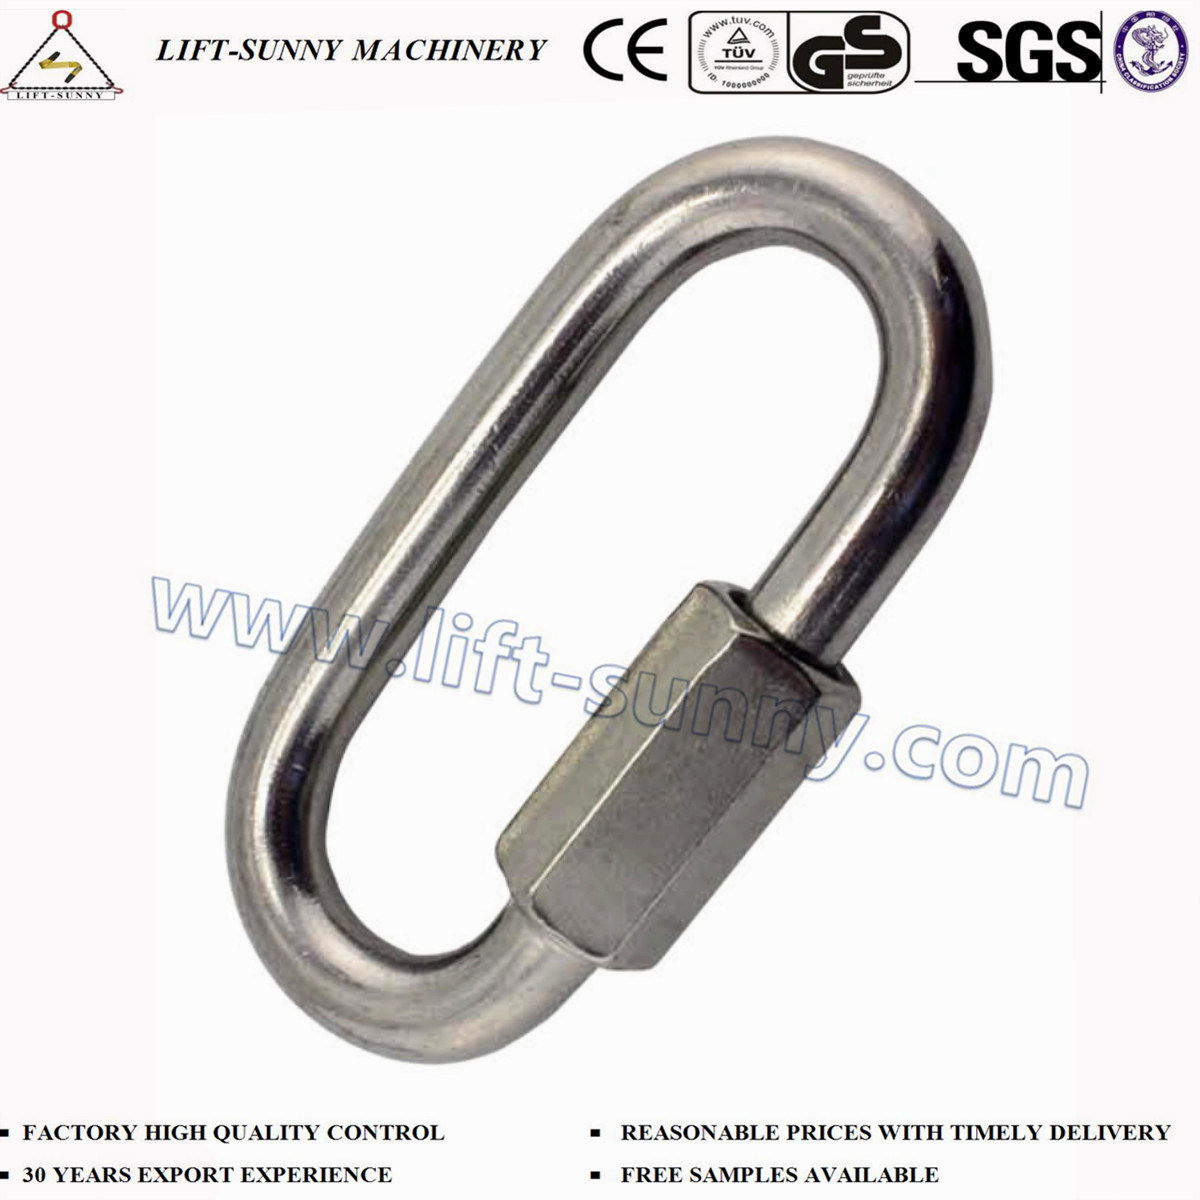 Extra Stainless Steel Quick-Link